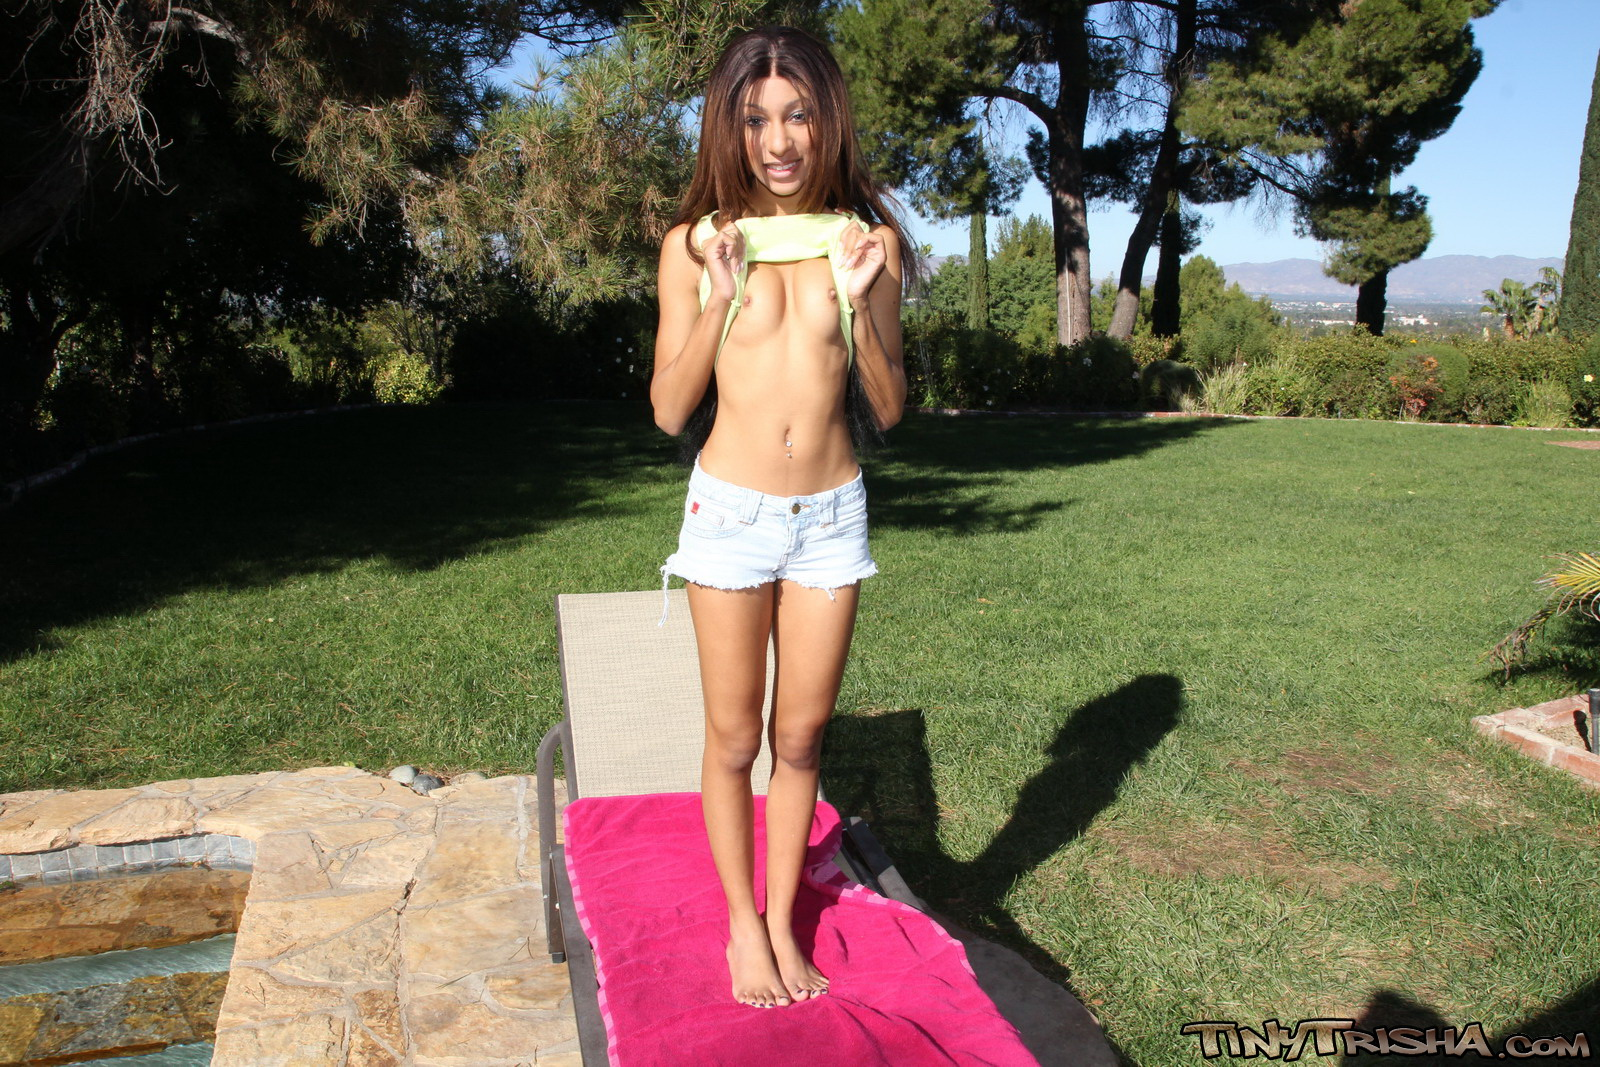 Tiny Trisha Enjoys Showing Off Her Sexy Body In Outdoors - Picture 3